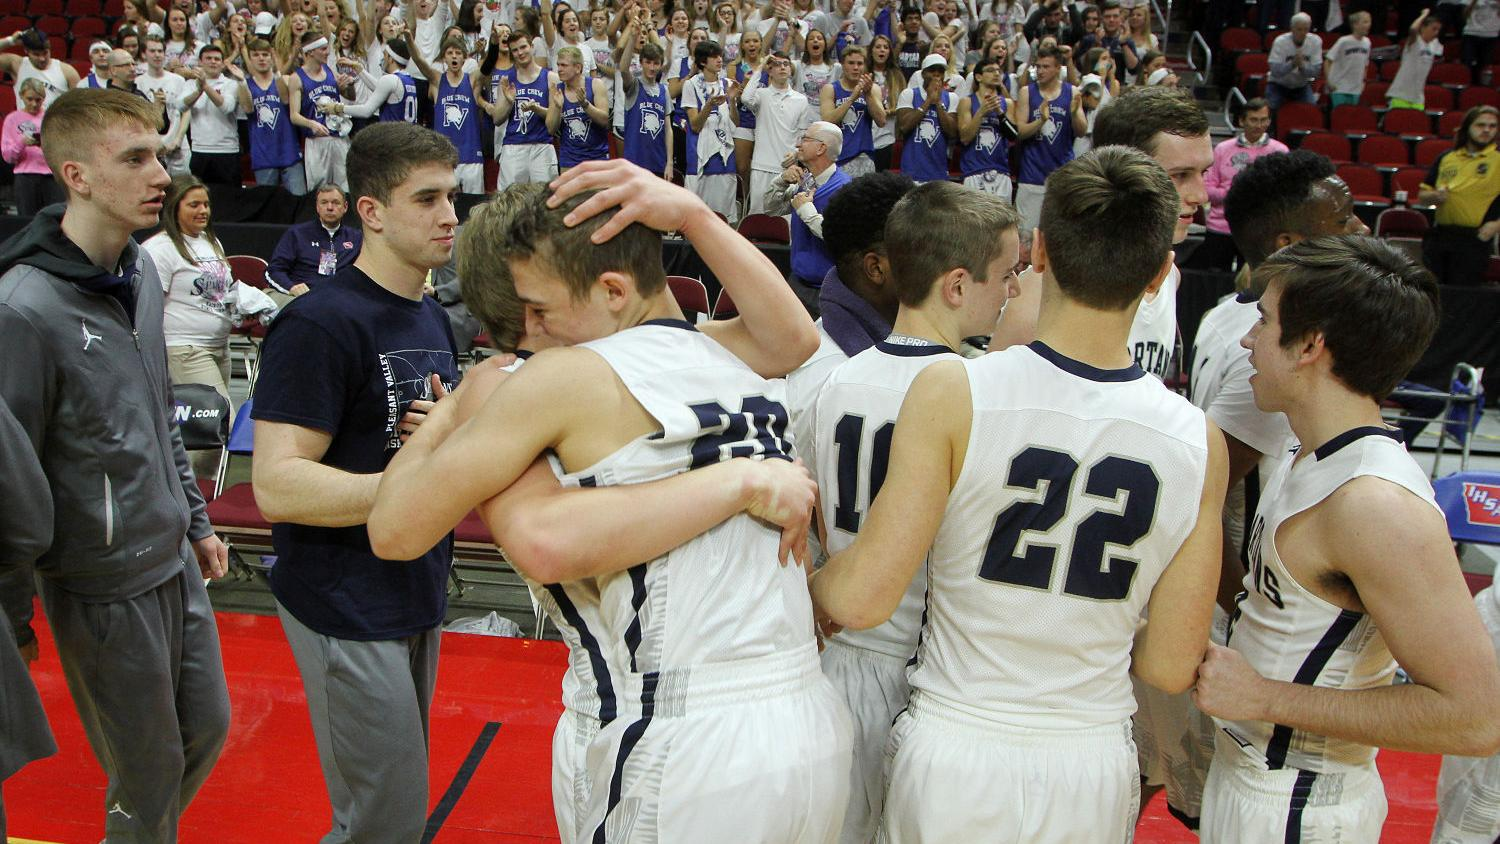 PV basketball: A season to remember | Bettendorf News ...